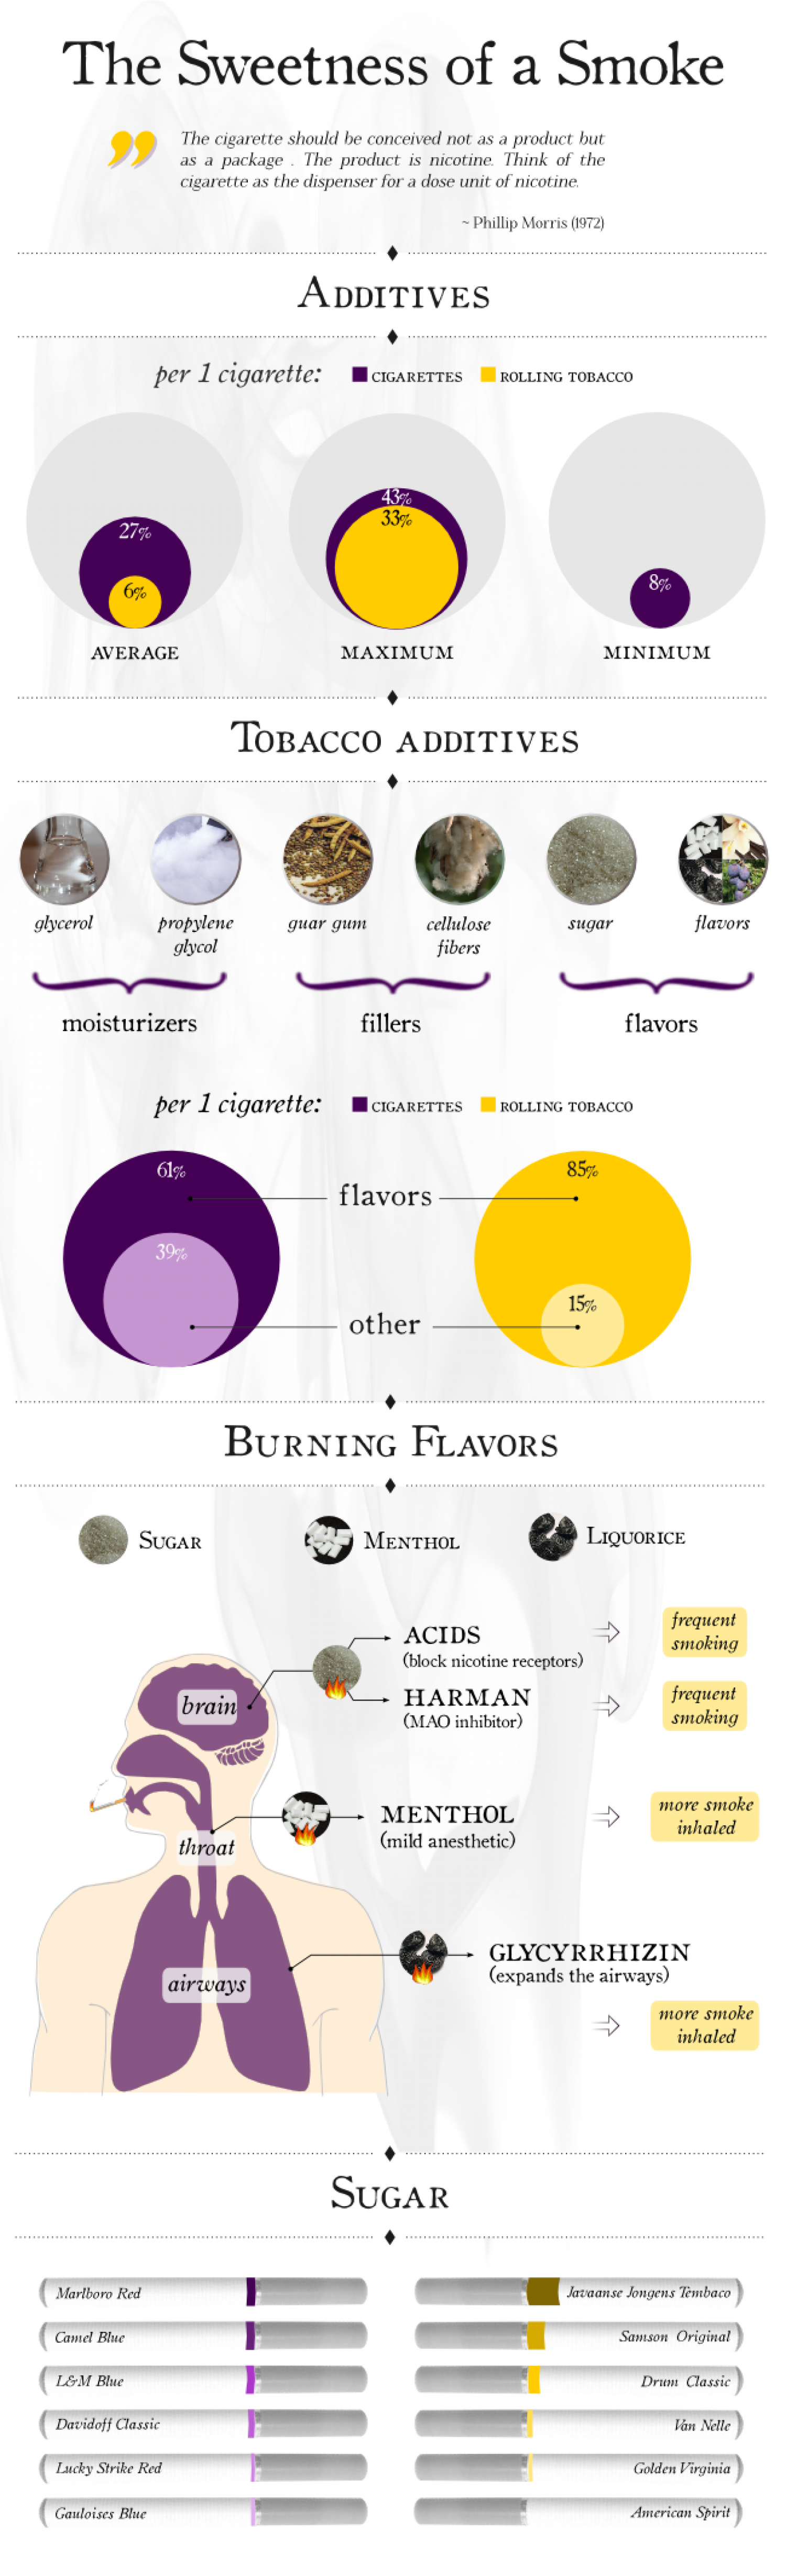 The sweetness of a smoke - about the additive in tobacco Infographic